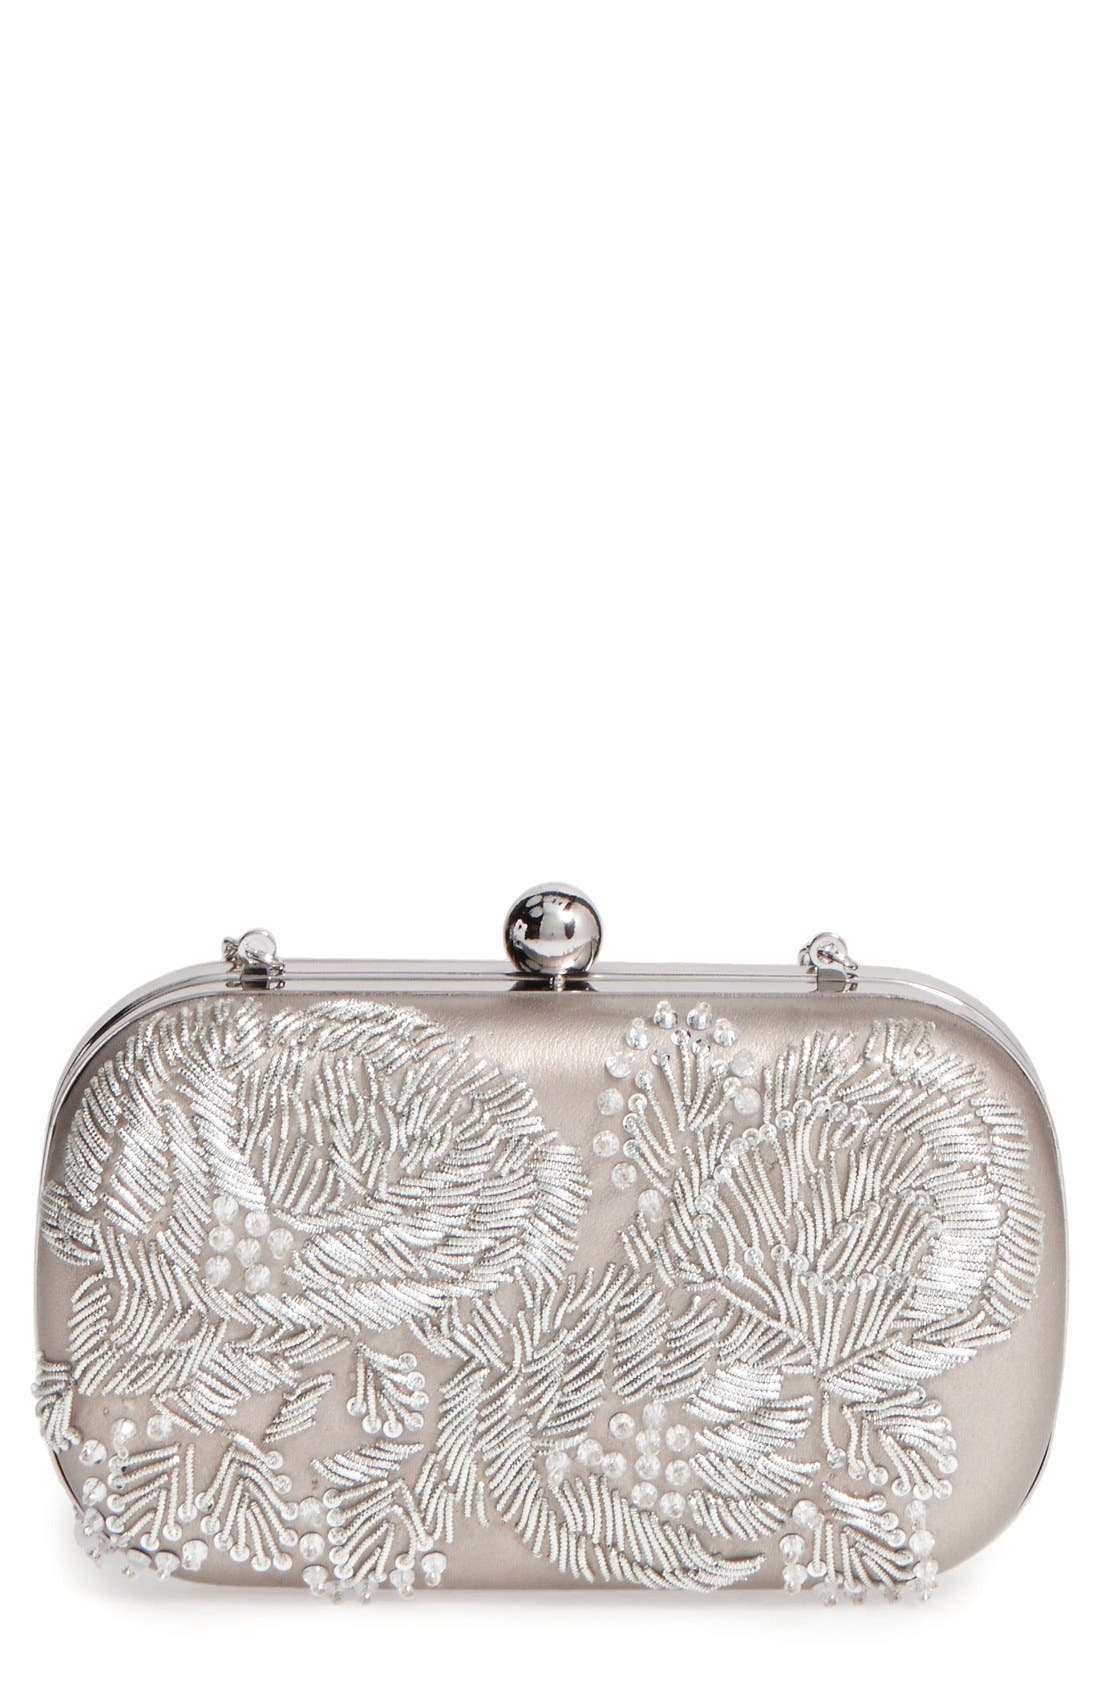 Main Image - La Regale Floral Metallic Embroidered Clutch